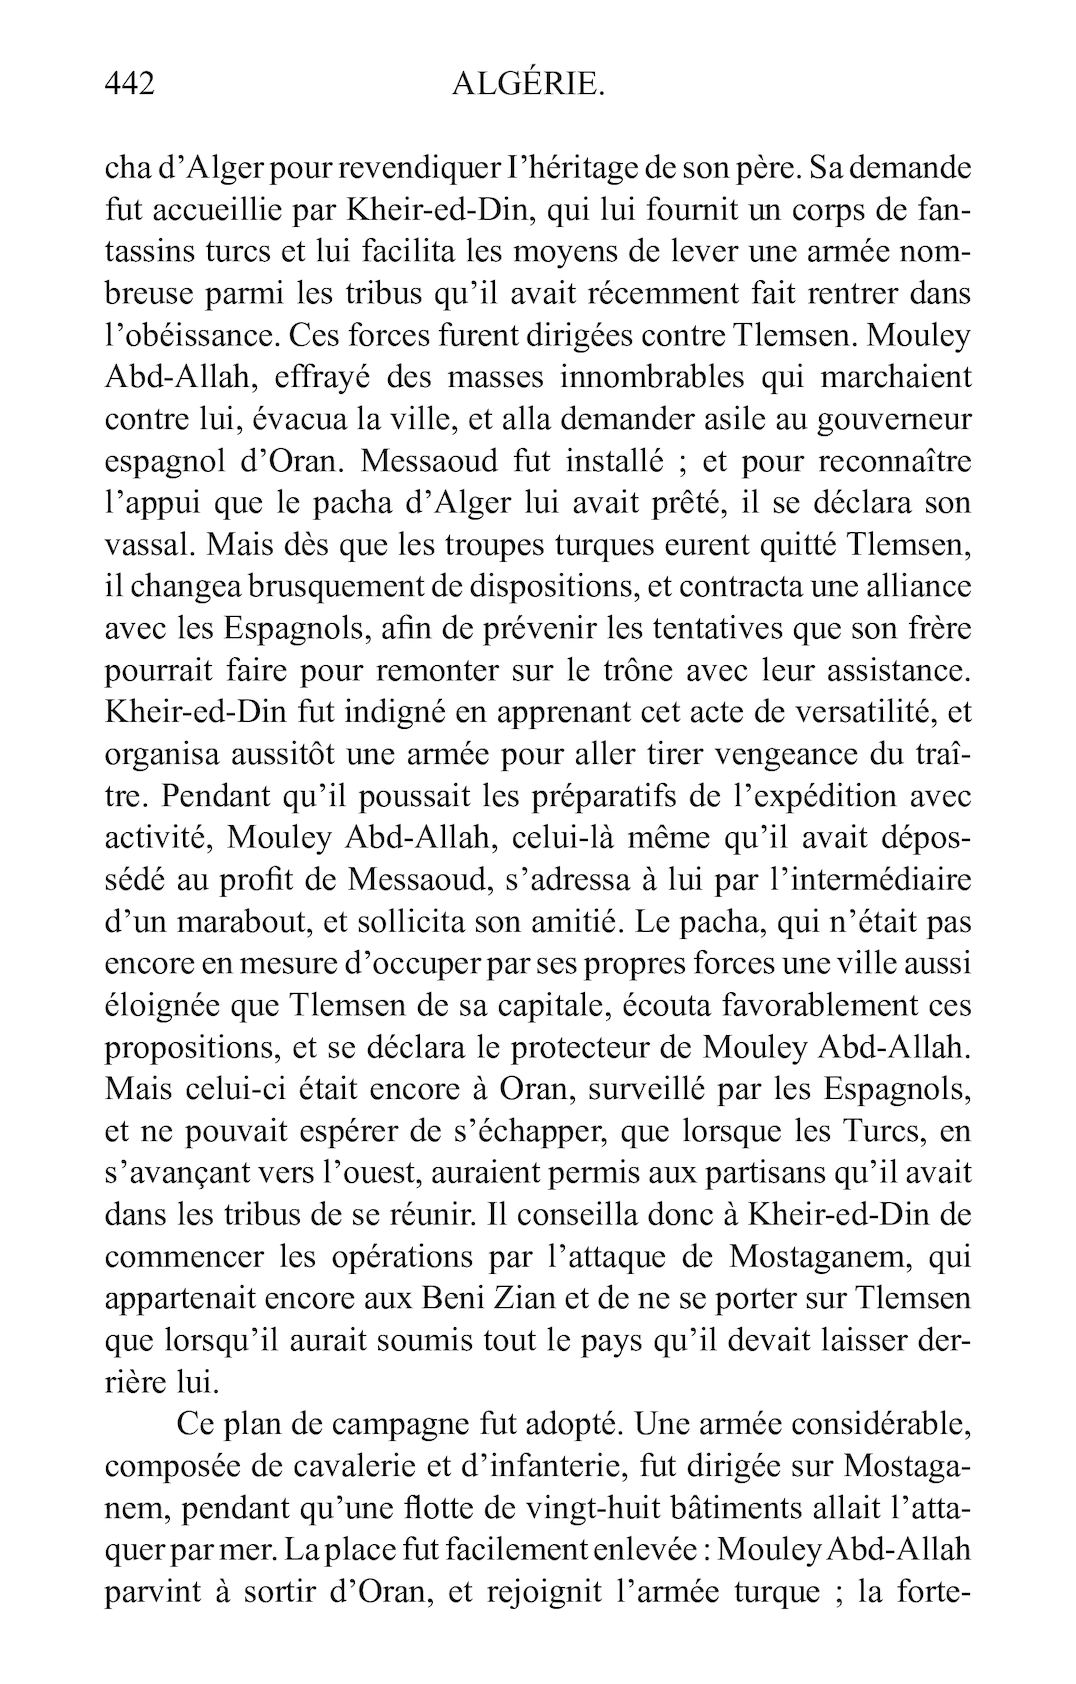 Page 446